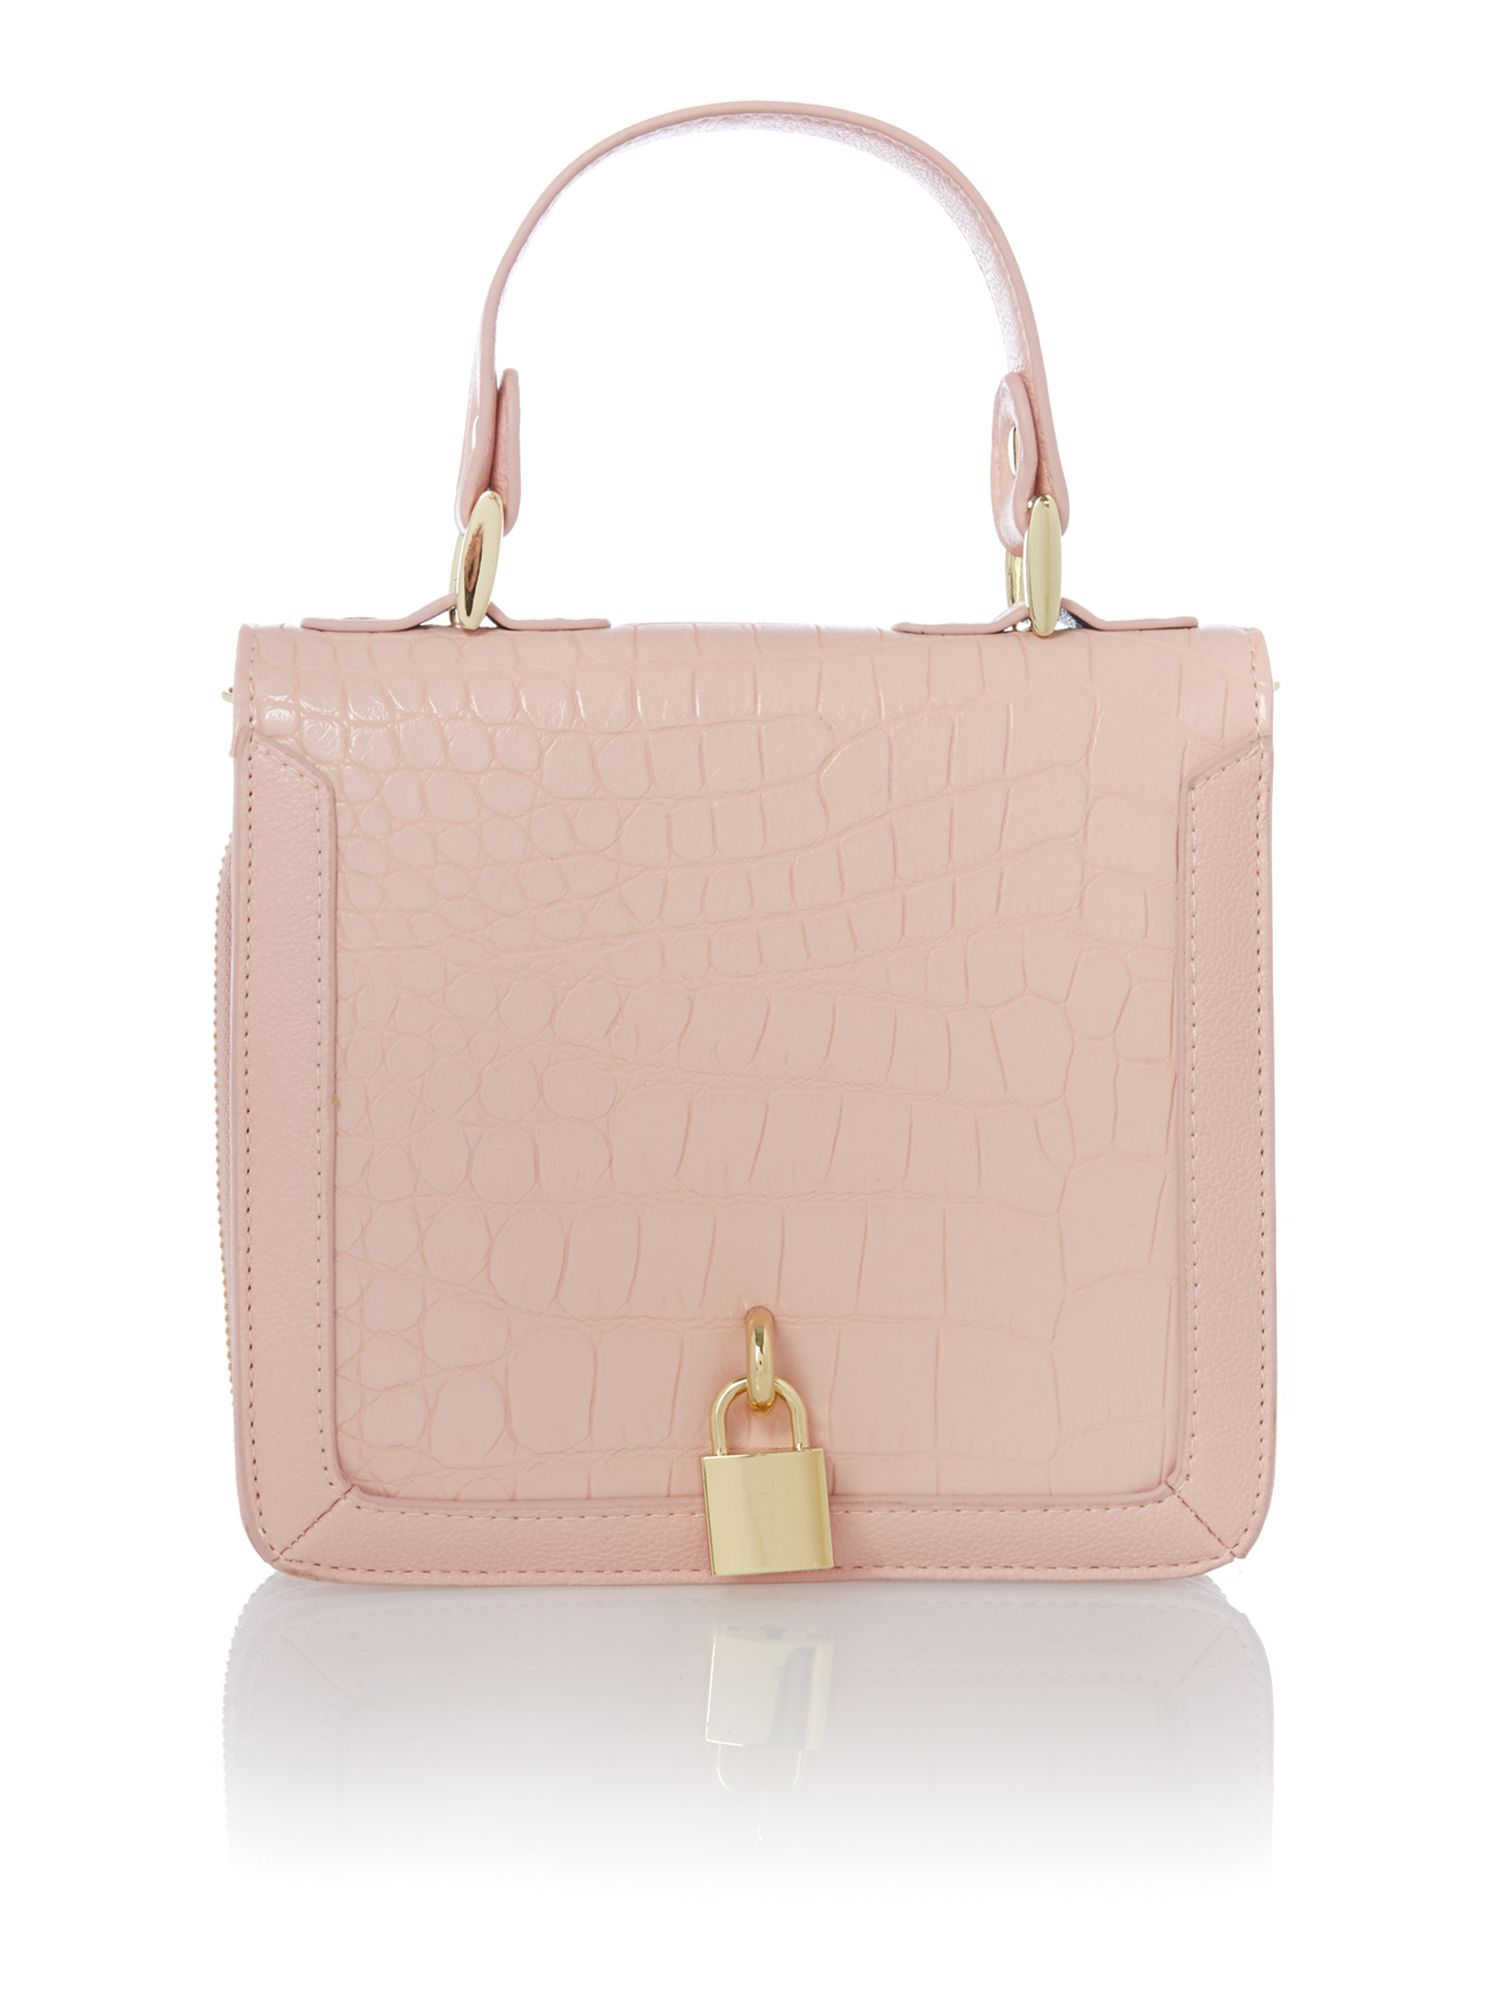 Rachel chain cross body bag